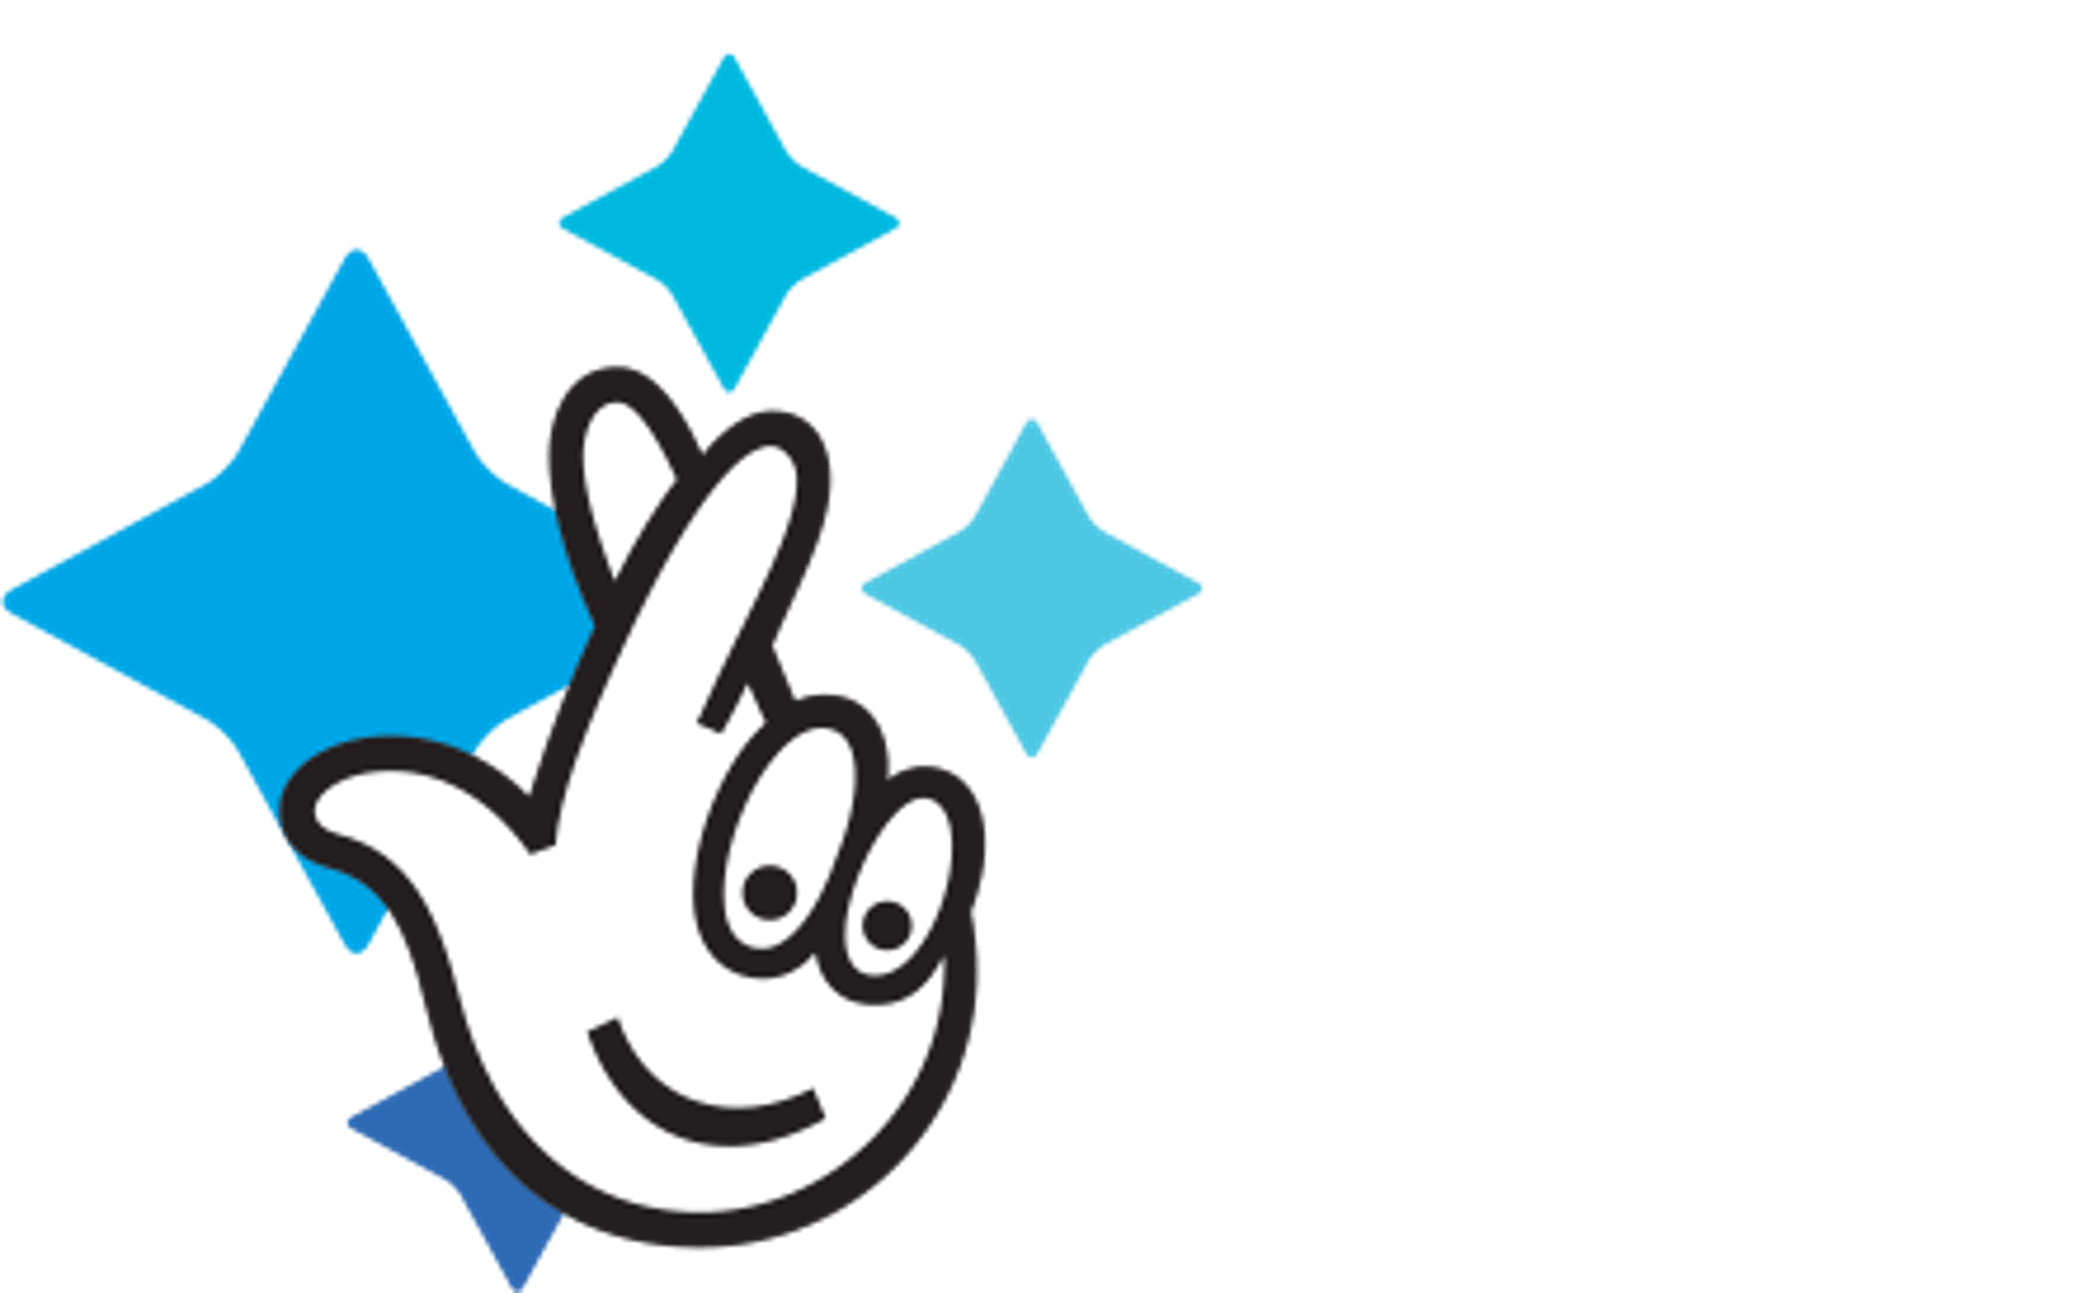 The National Lottery Logo.